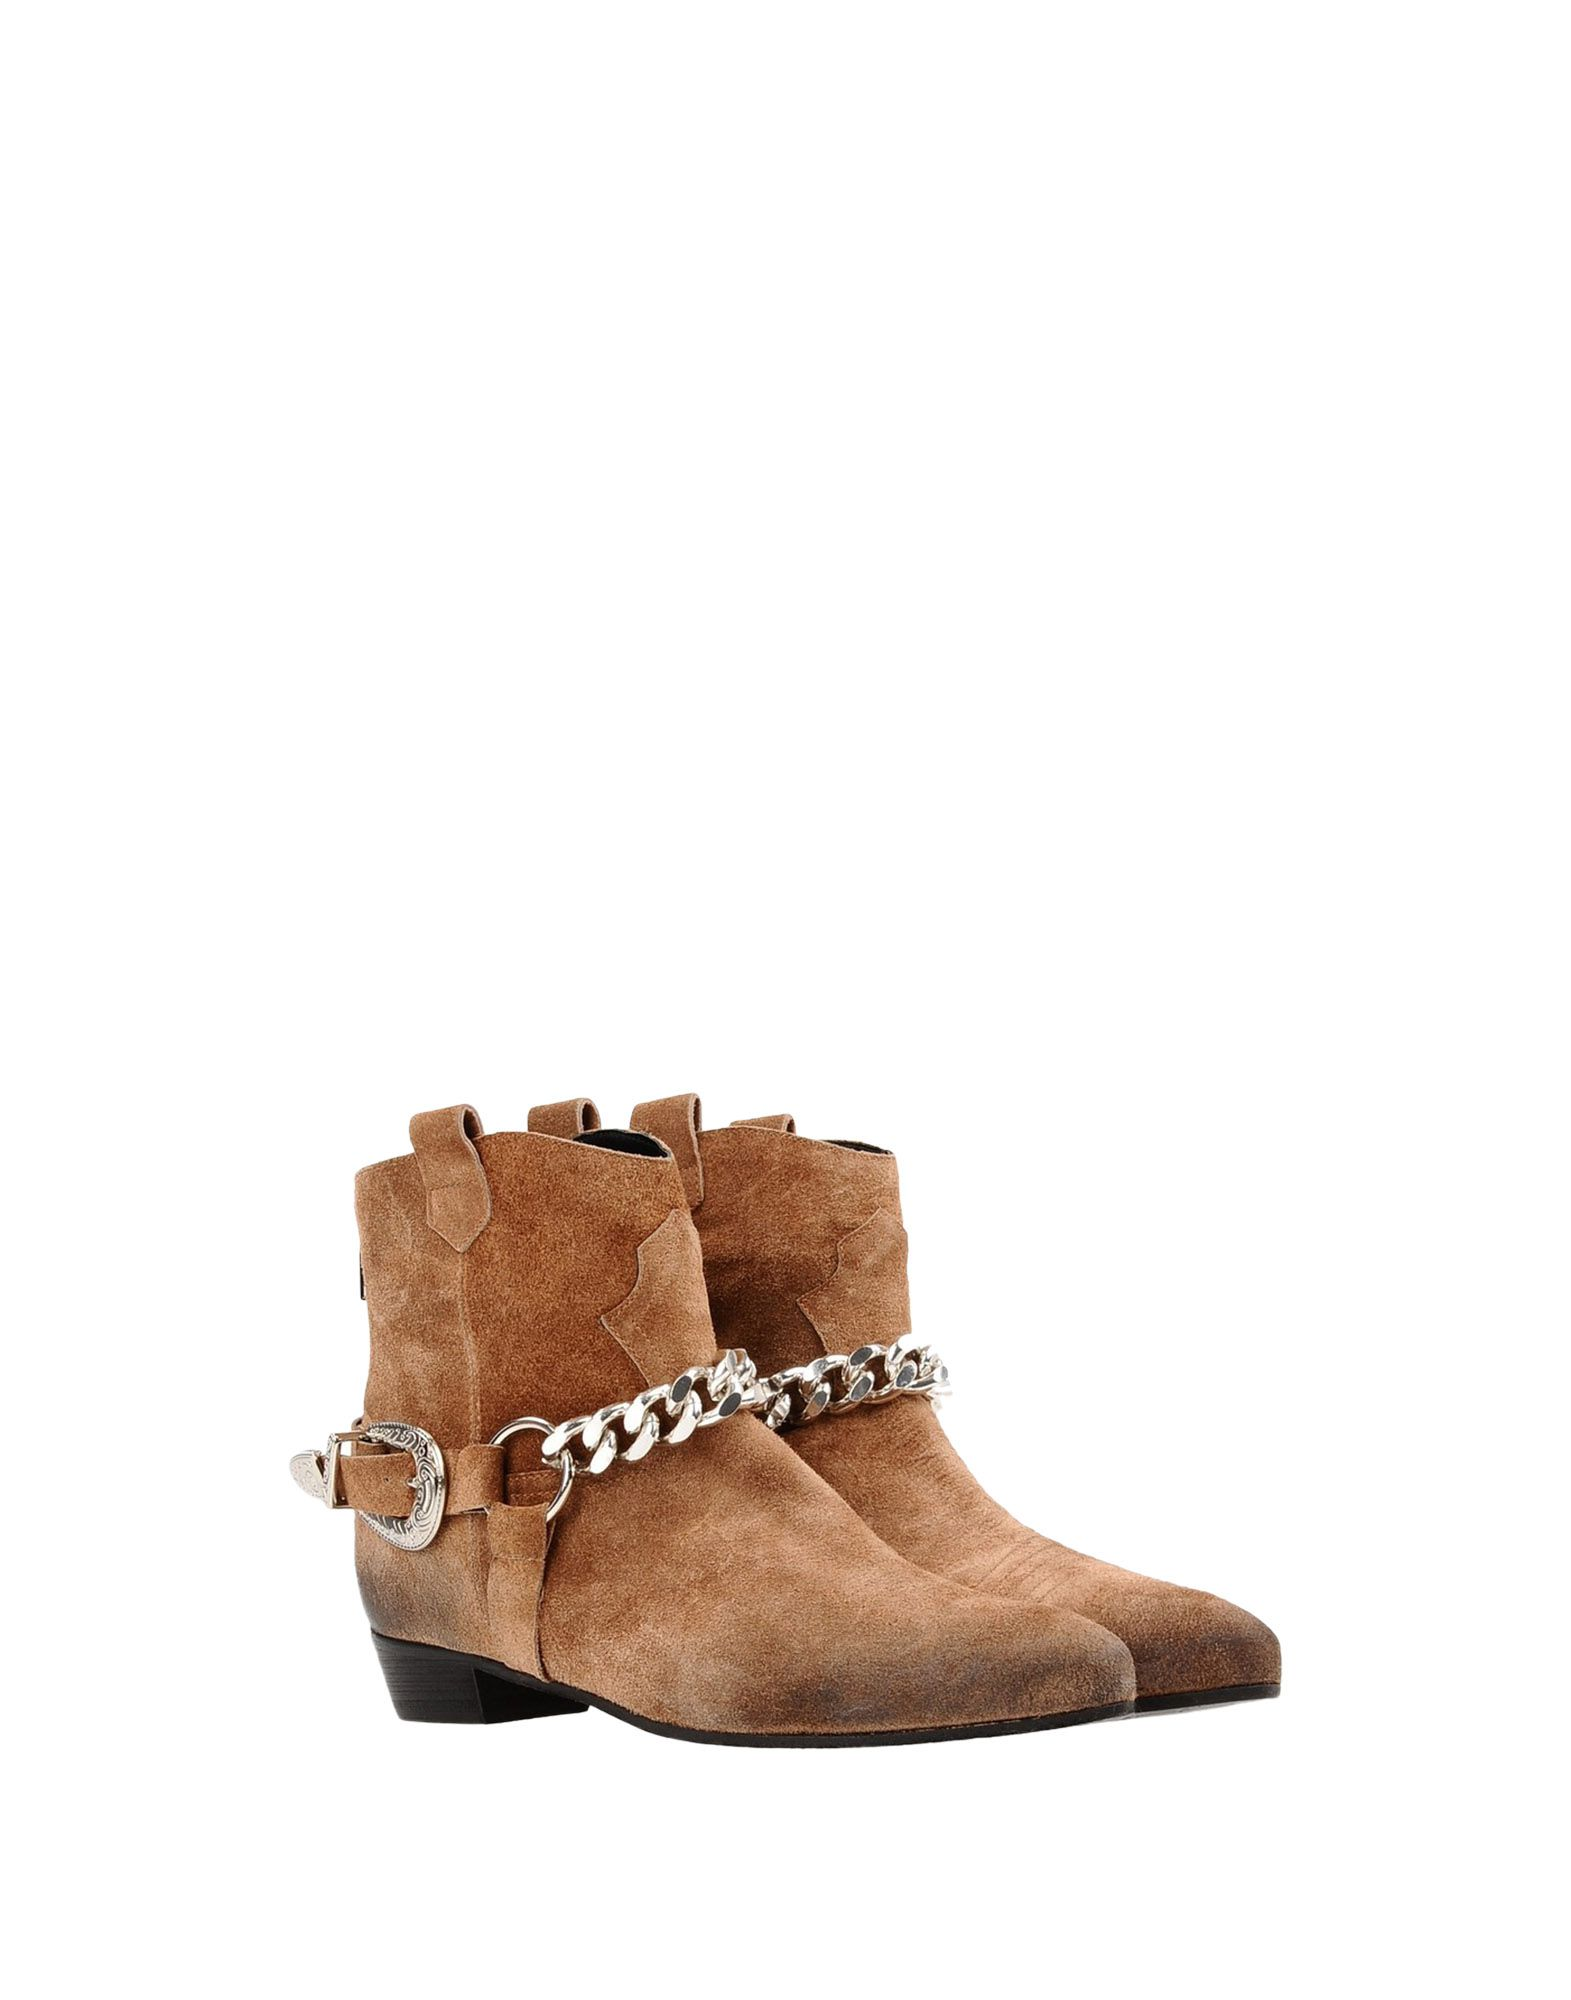 Bottine Stephen Good  London Femme - Bottines Stephen Good  London sur